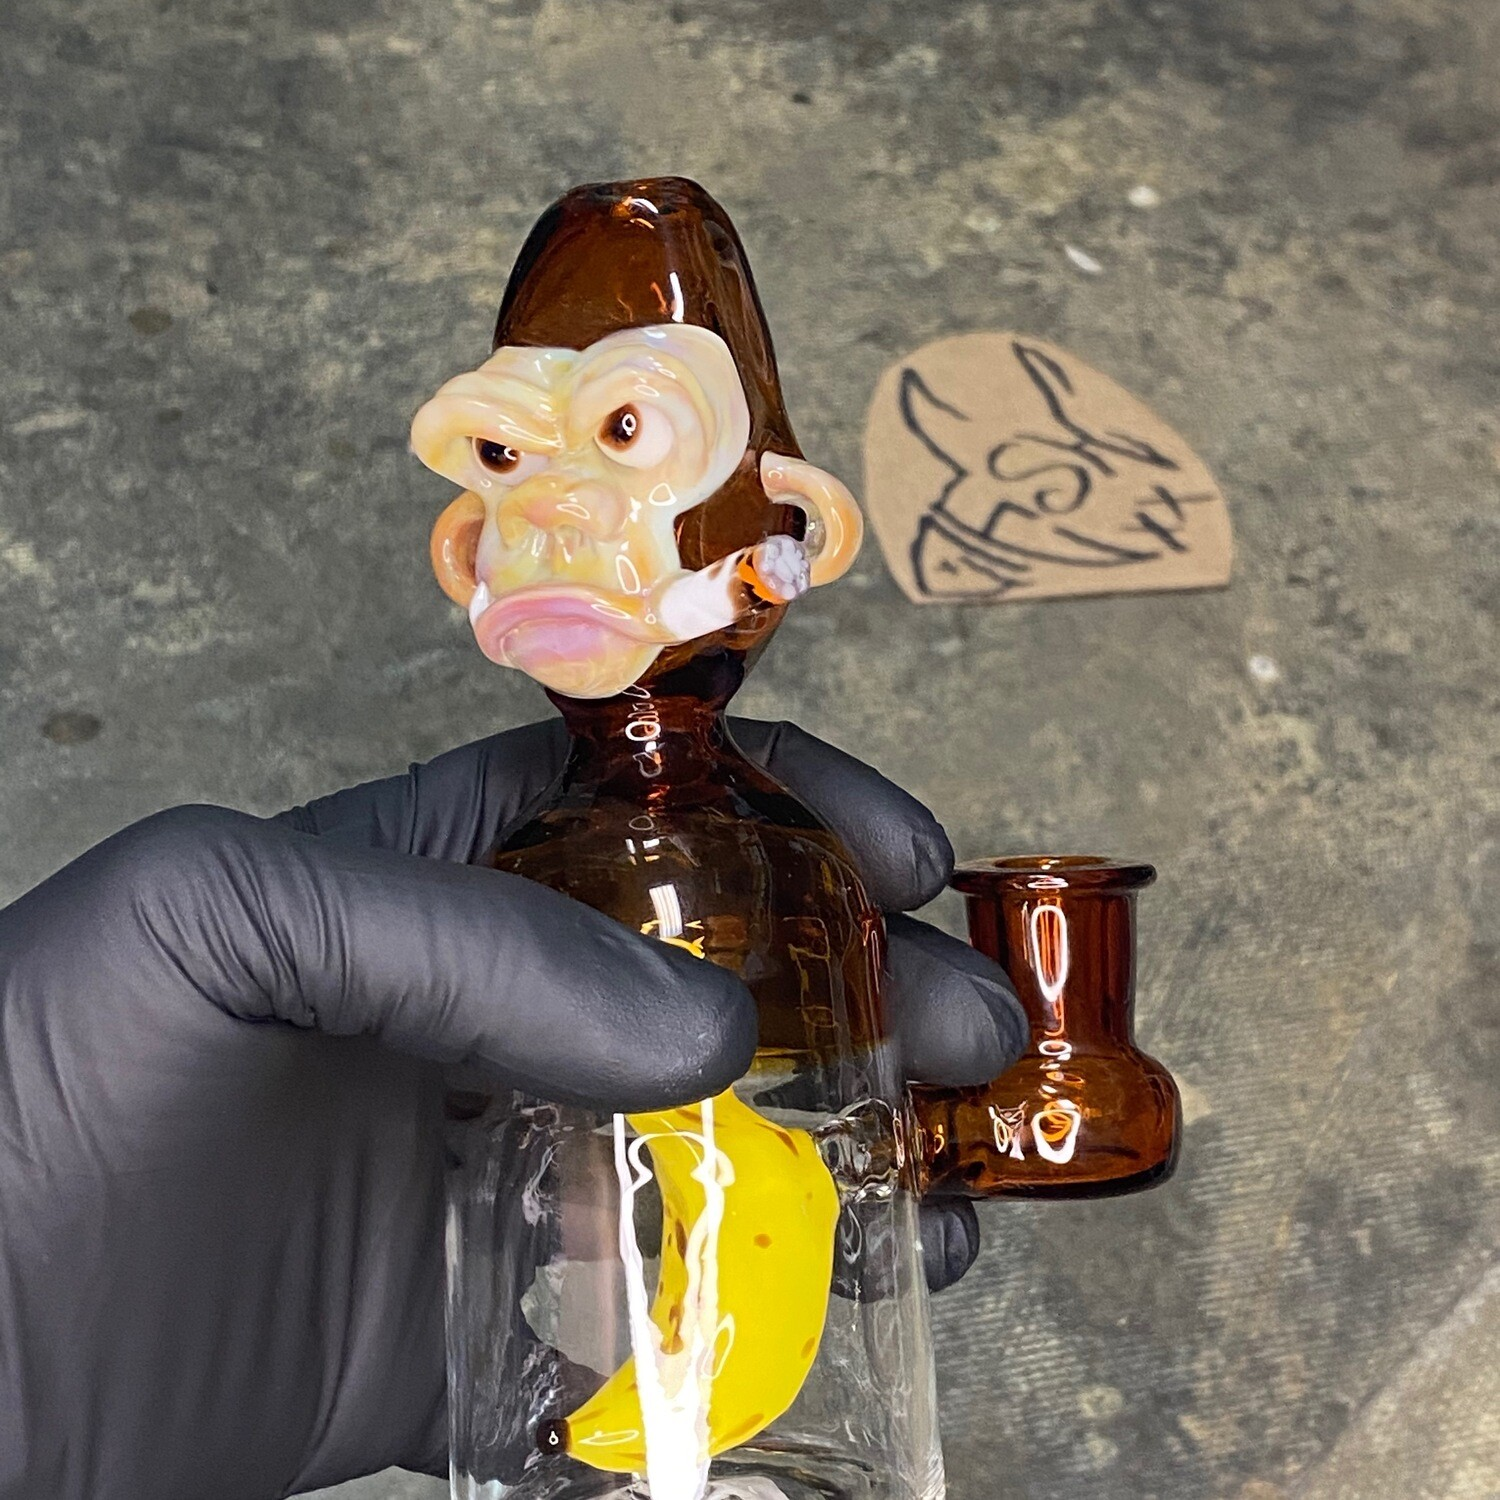 Jon Fischbach Chimp Rig w/ Banana Perc and Spinning Carb Cap - Amber